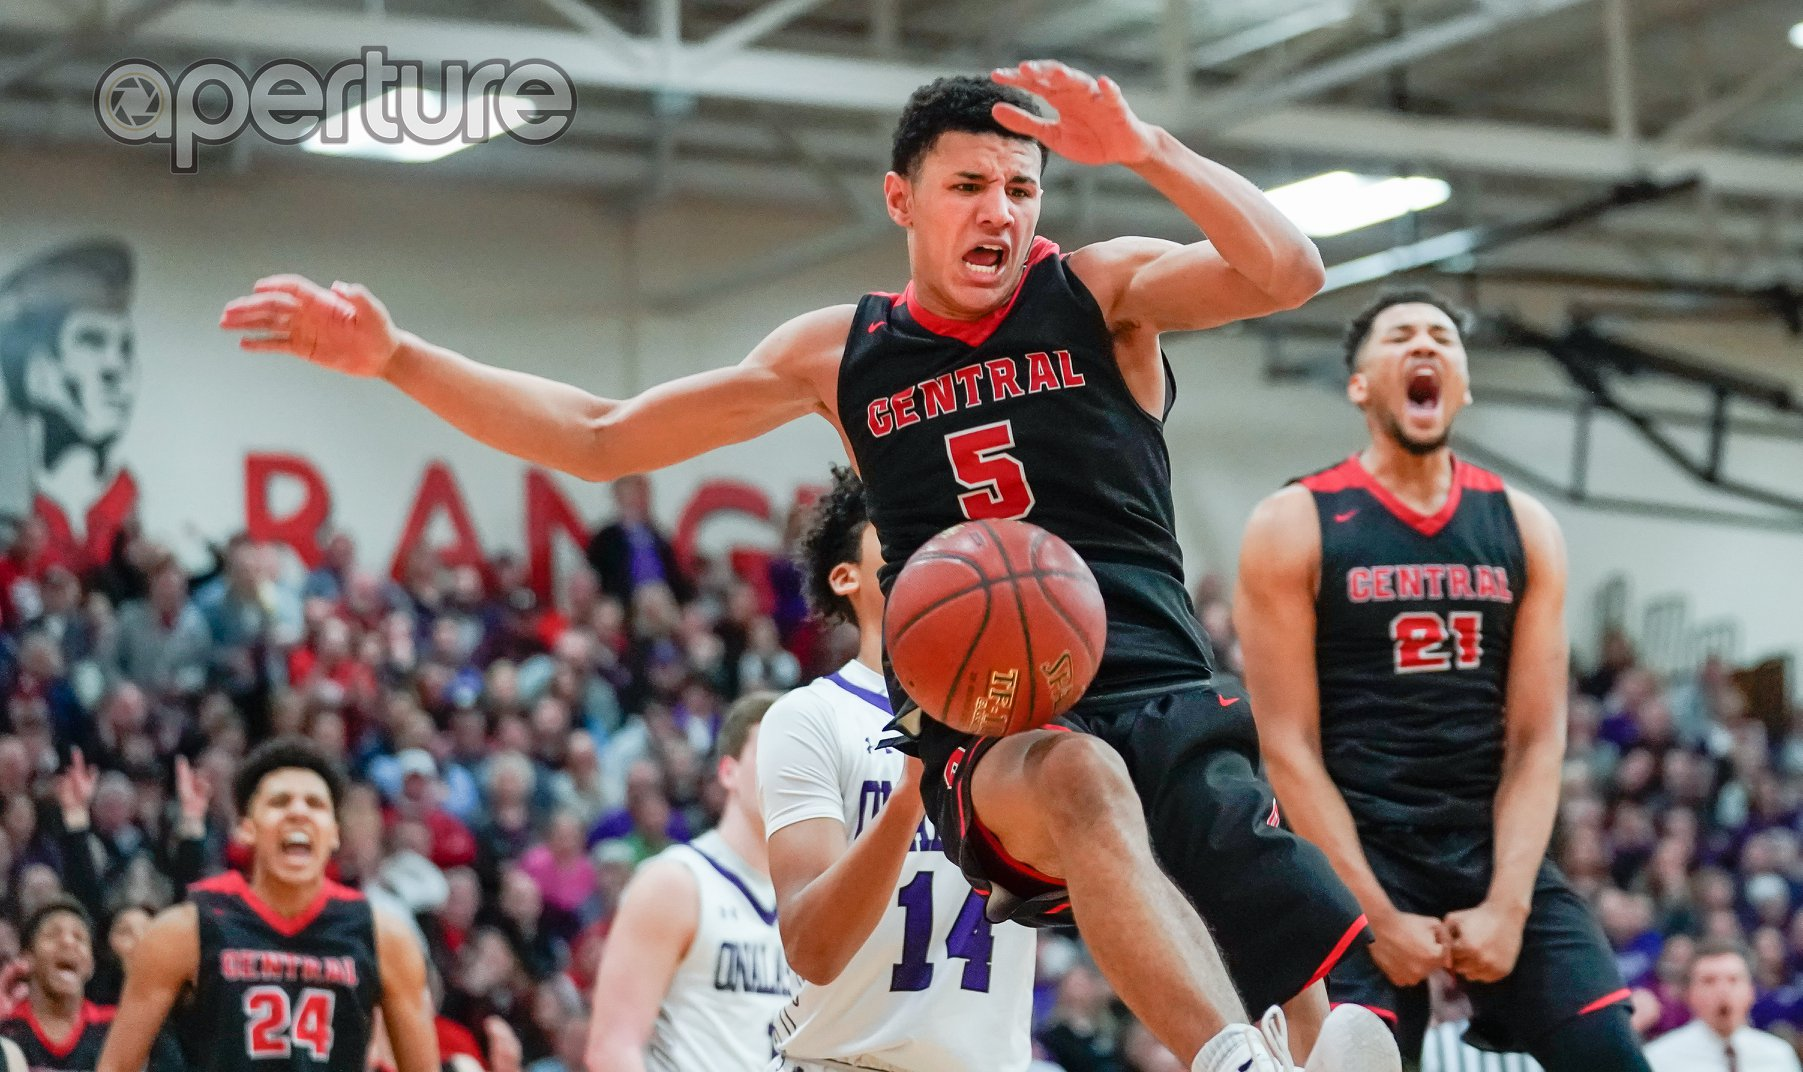 After back-to-back semifinal losses, Central eyeing state championship